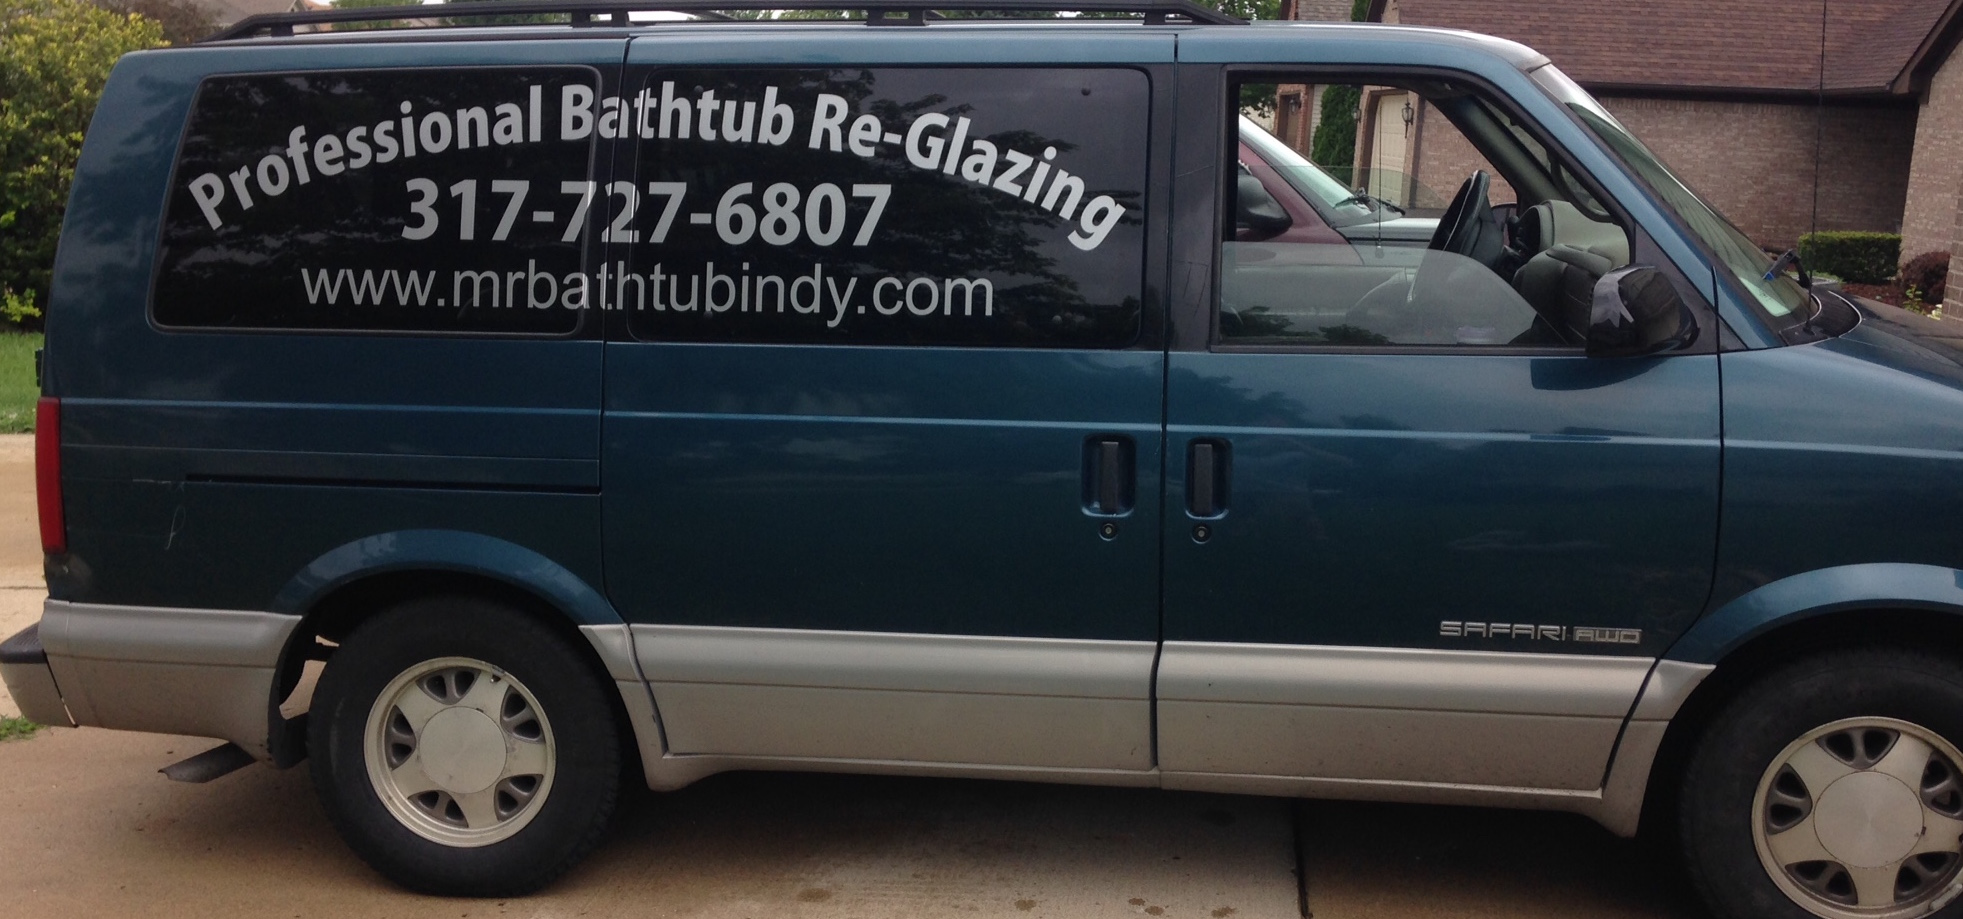 Fantastic Paint For A Bathtub Thick Bathtub Refinishing Service Shaped Companies That Refinish Bathtubs Bathtub Repair Youthful Bathtub Resurfacing Cost BrightTub Glaze Image14.jpg?quality\u003d100